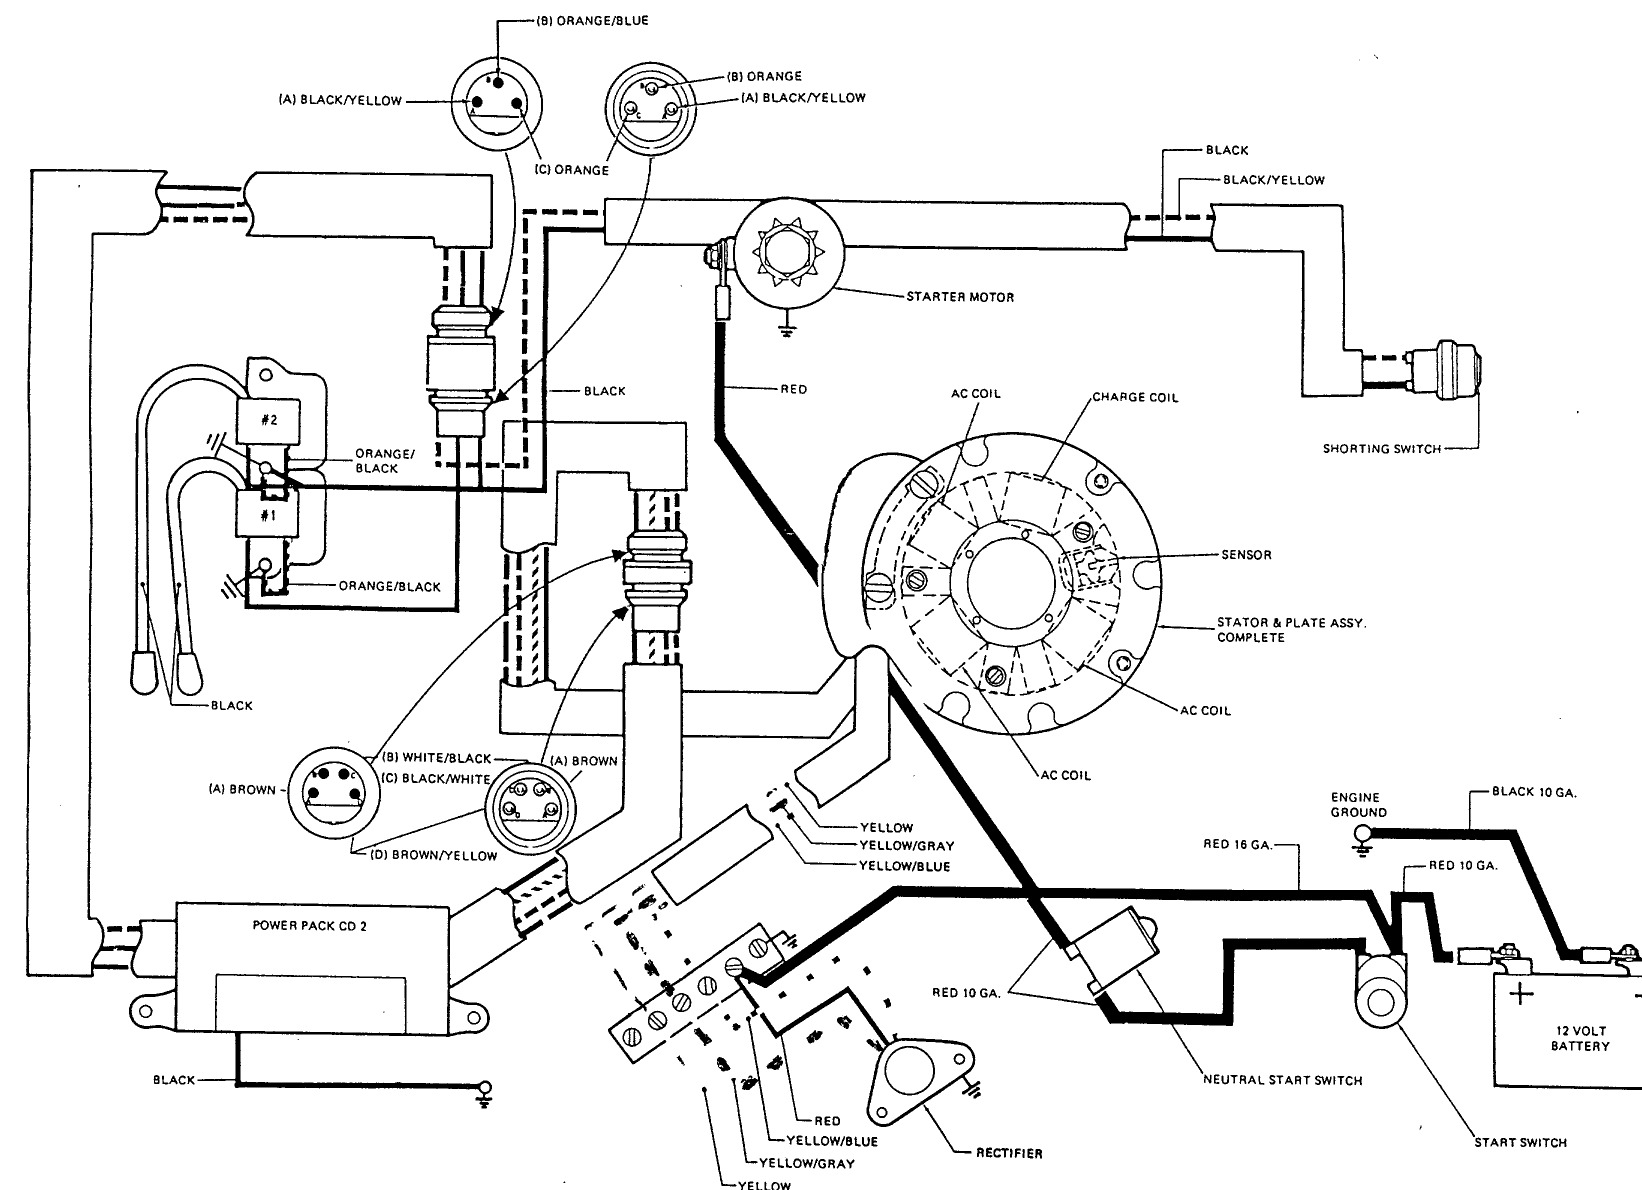 electrical diagram electric maintaining johnson 9 9 troubleshooting Johnson Ignition Switch Wiring Diagram at reclaimingppi.co